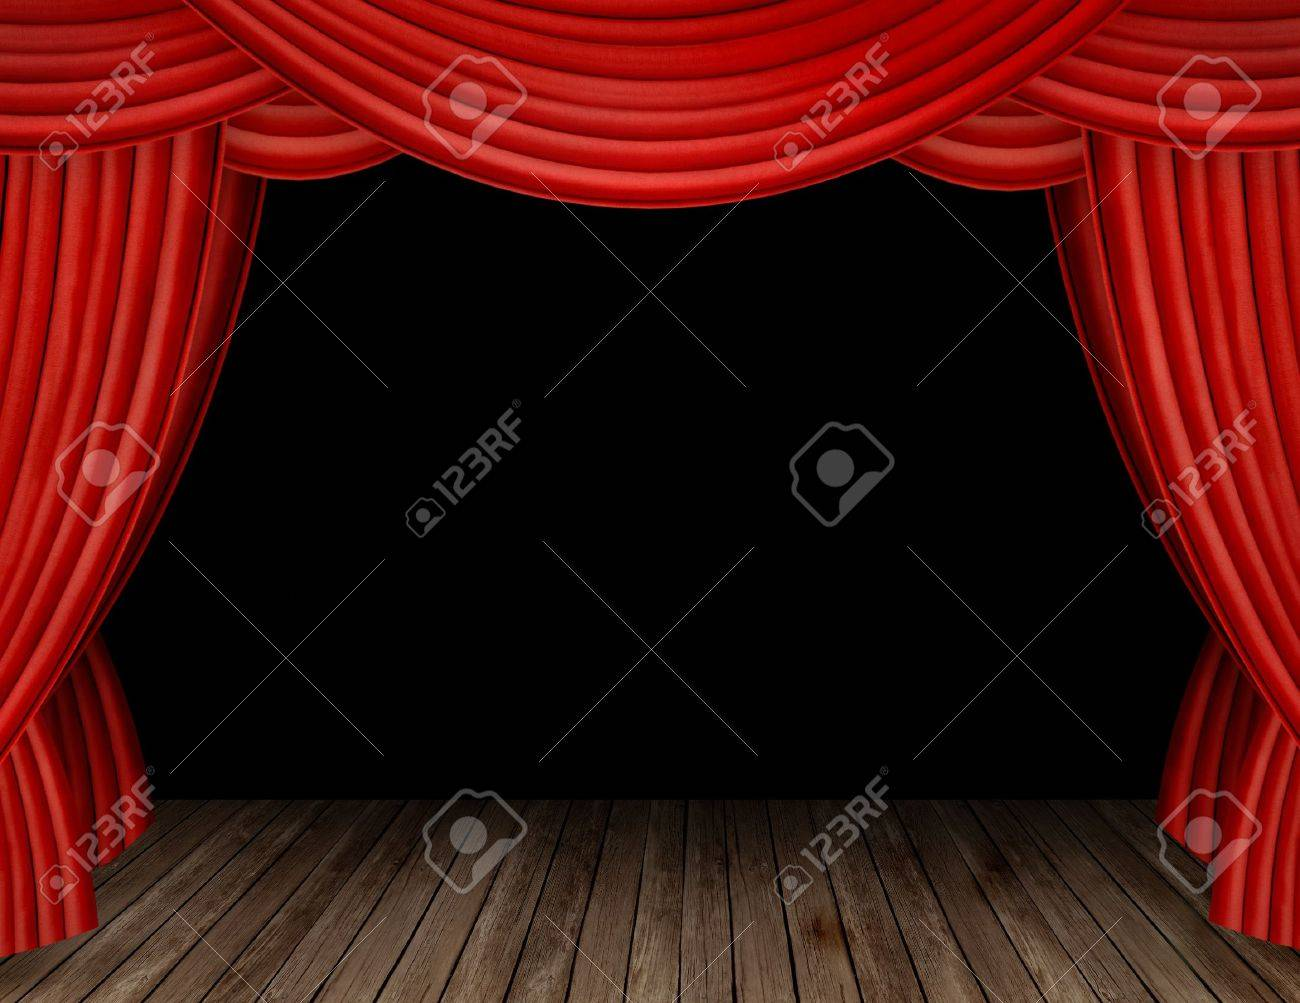 Black theatre curtain - Large Red Curtain Stage Opening With Black Background Stock Photo 9601631